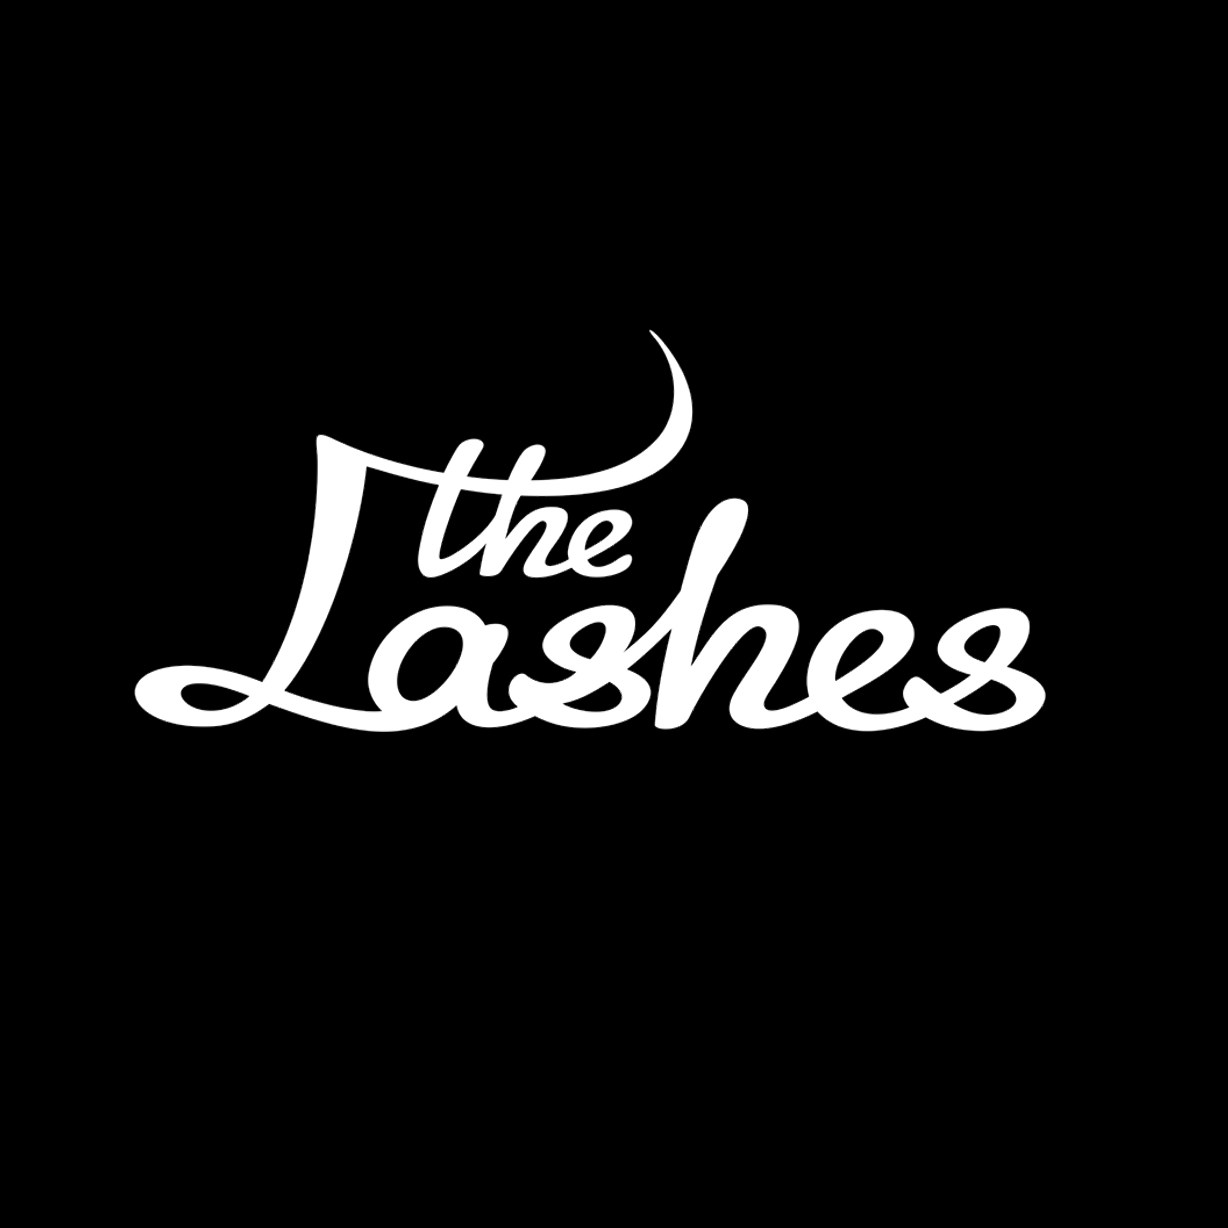 The Lashes - eyelash extension studio